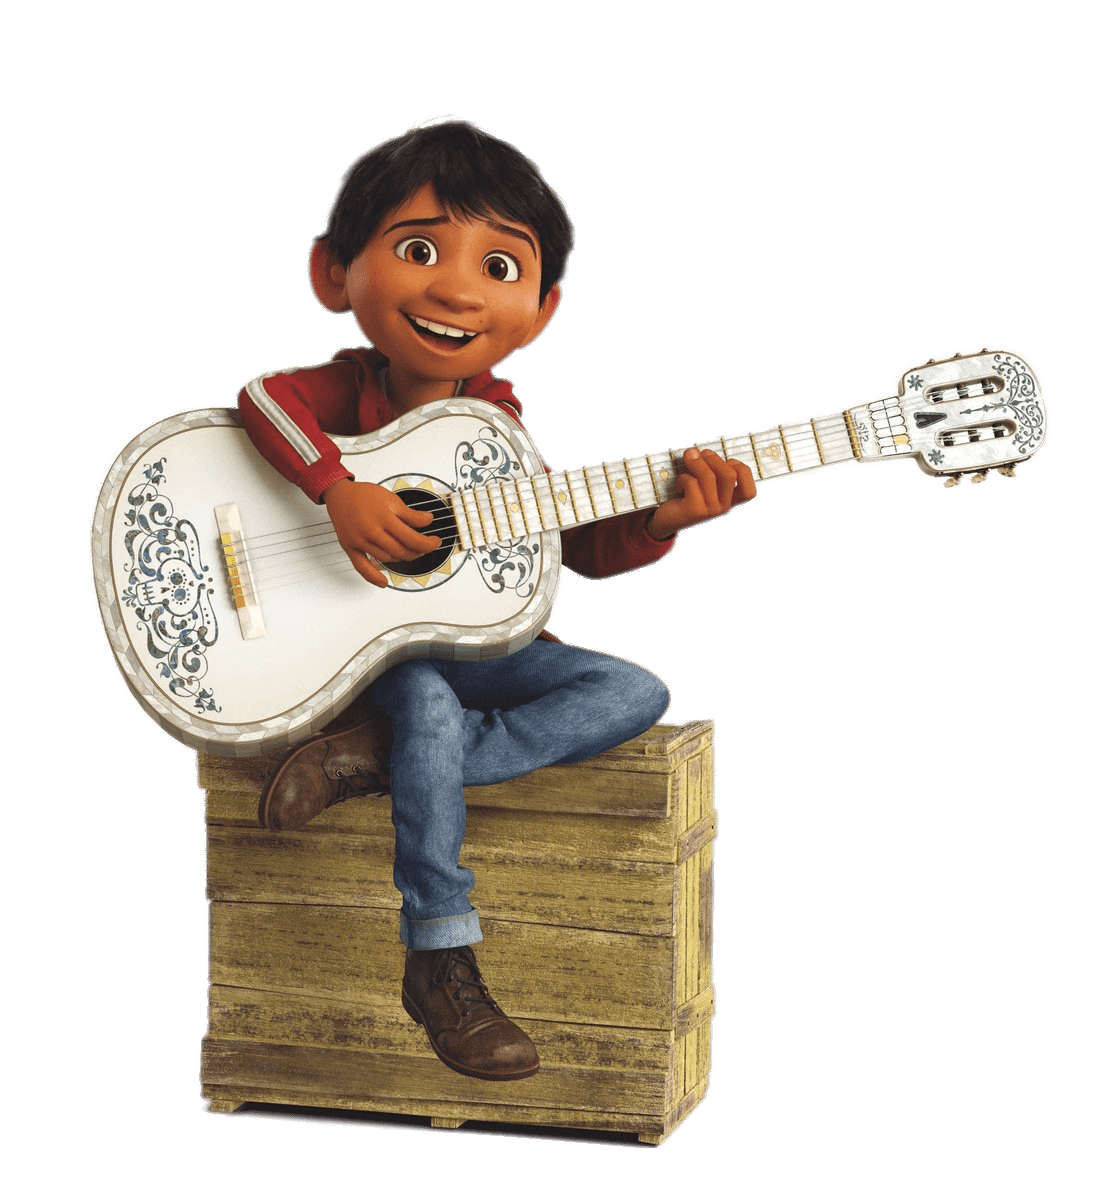 Miguel sitting on wooden. Coco png svg transparent download